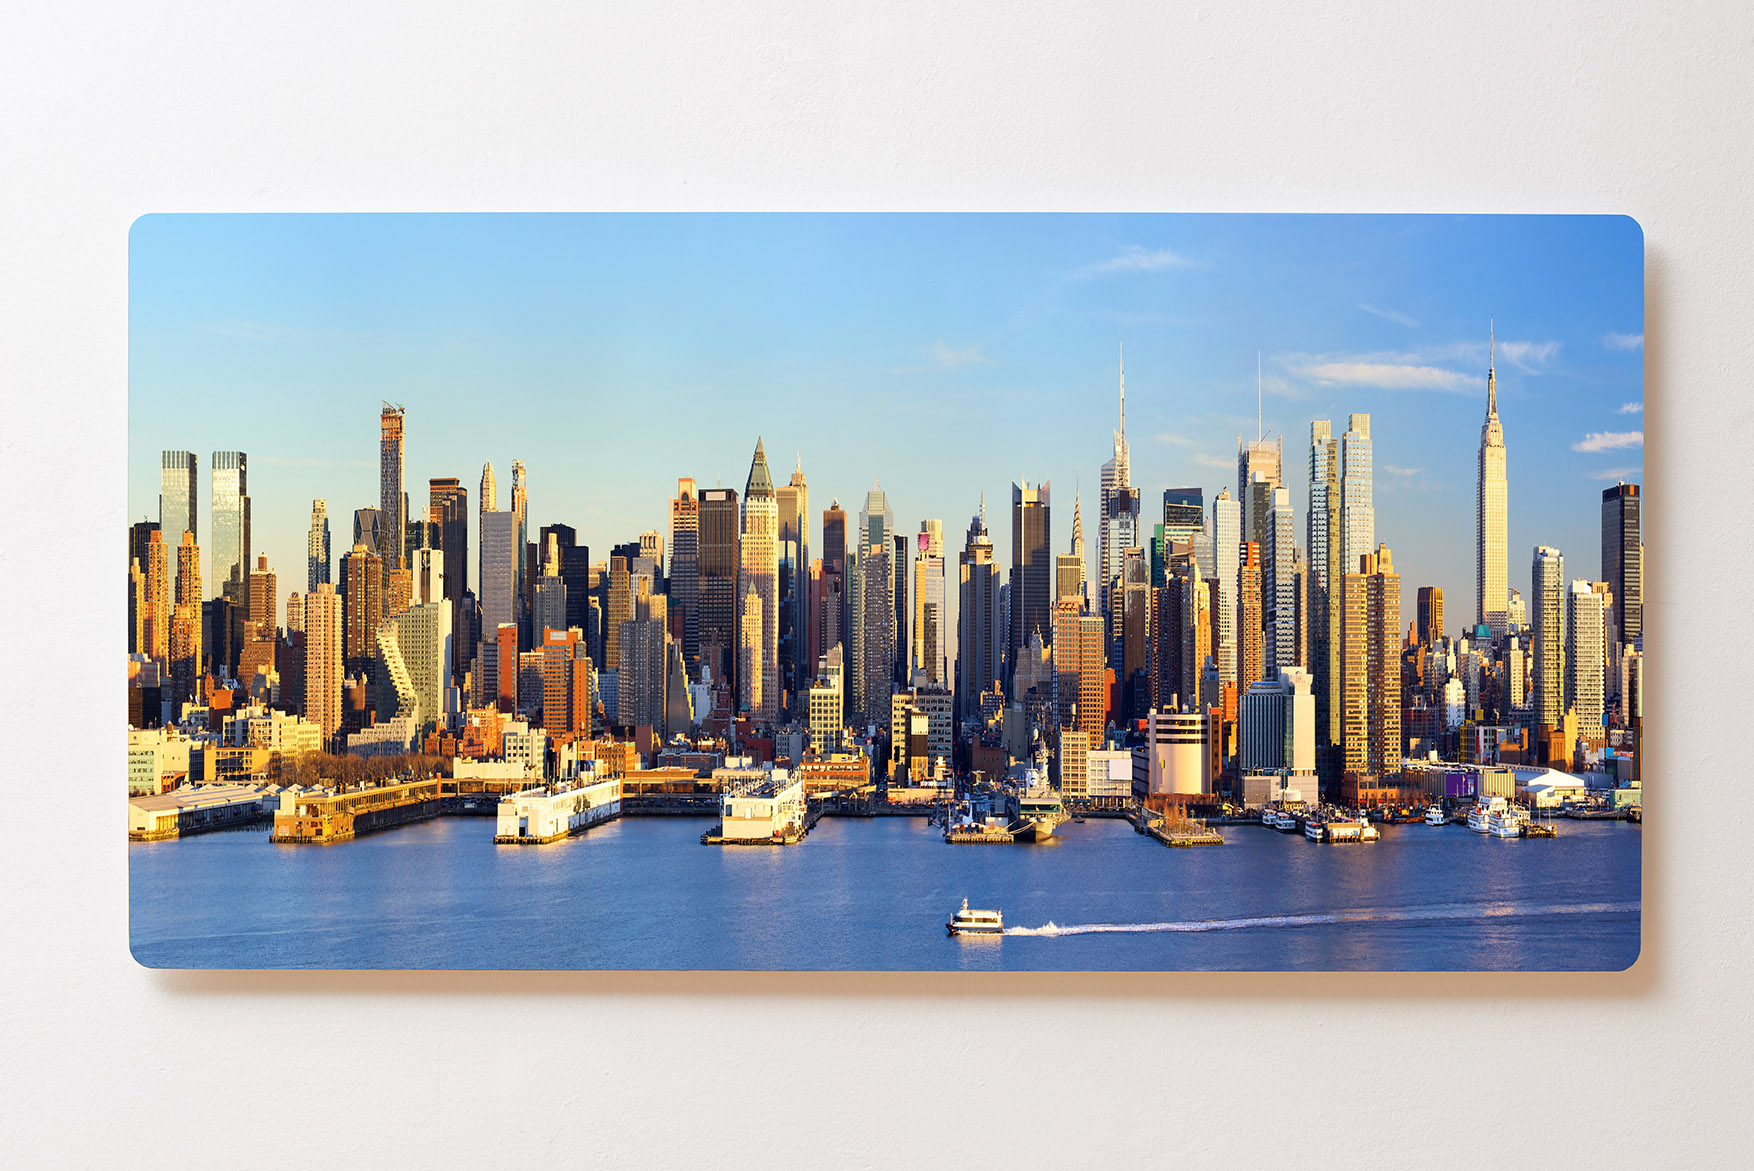 Magnettafel BACKLIGHT 120x60cm Motiv-Wandbild M100 New York Skyline